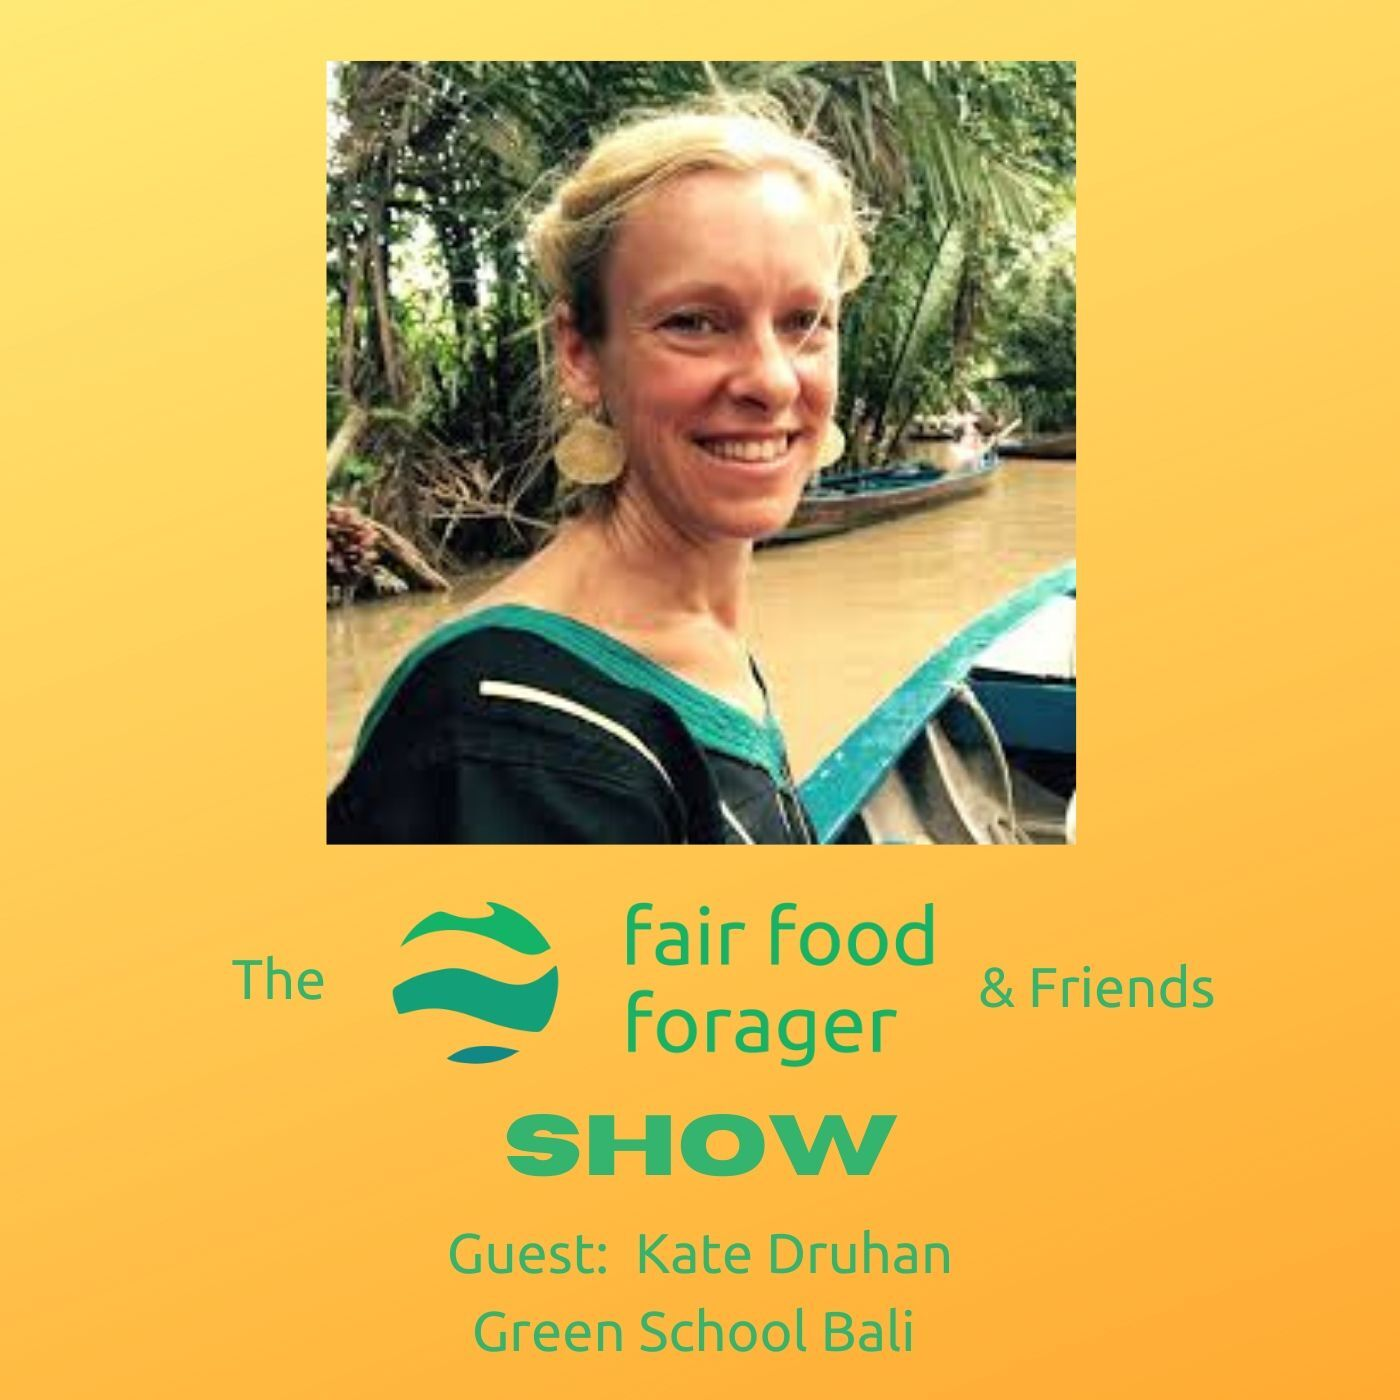 #13 Kate Druhan, Green School Bali - Finding green school, holistic thinking, sustainability and beautiful Bali